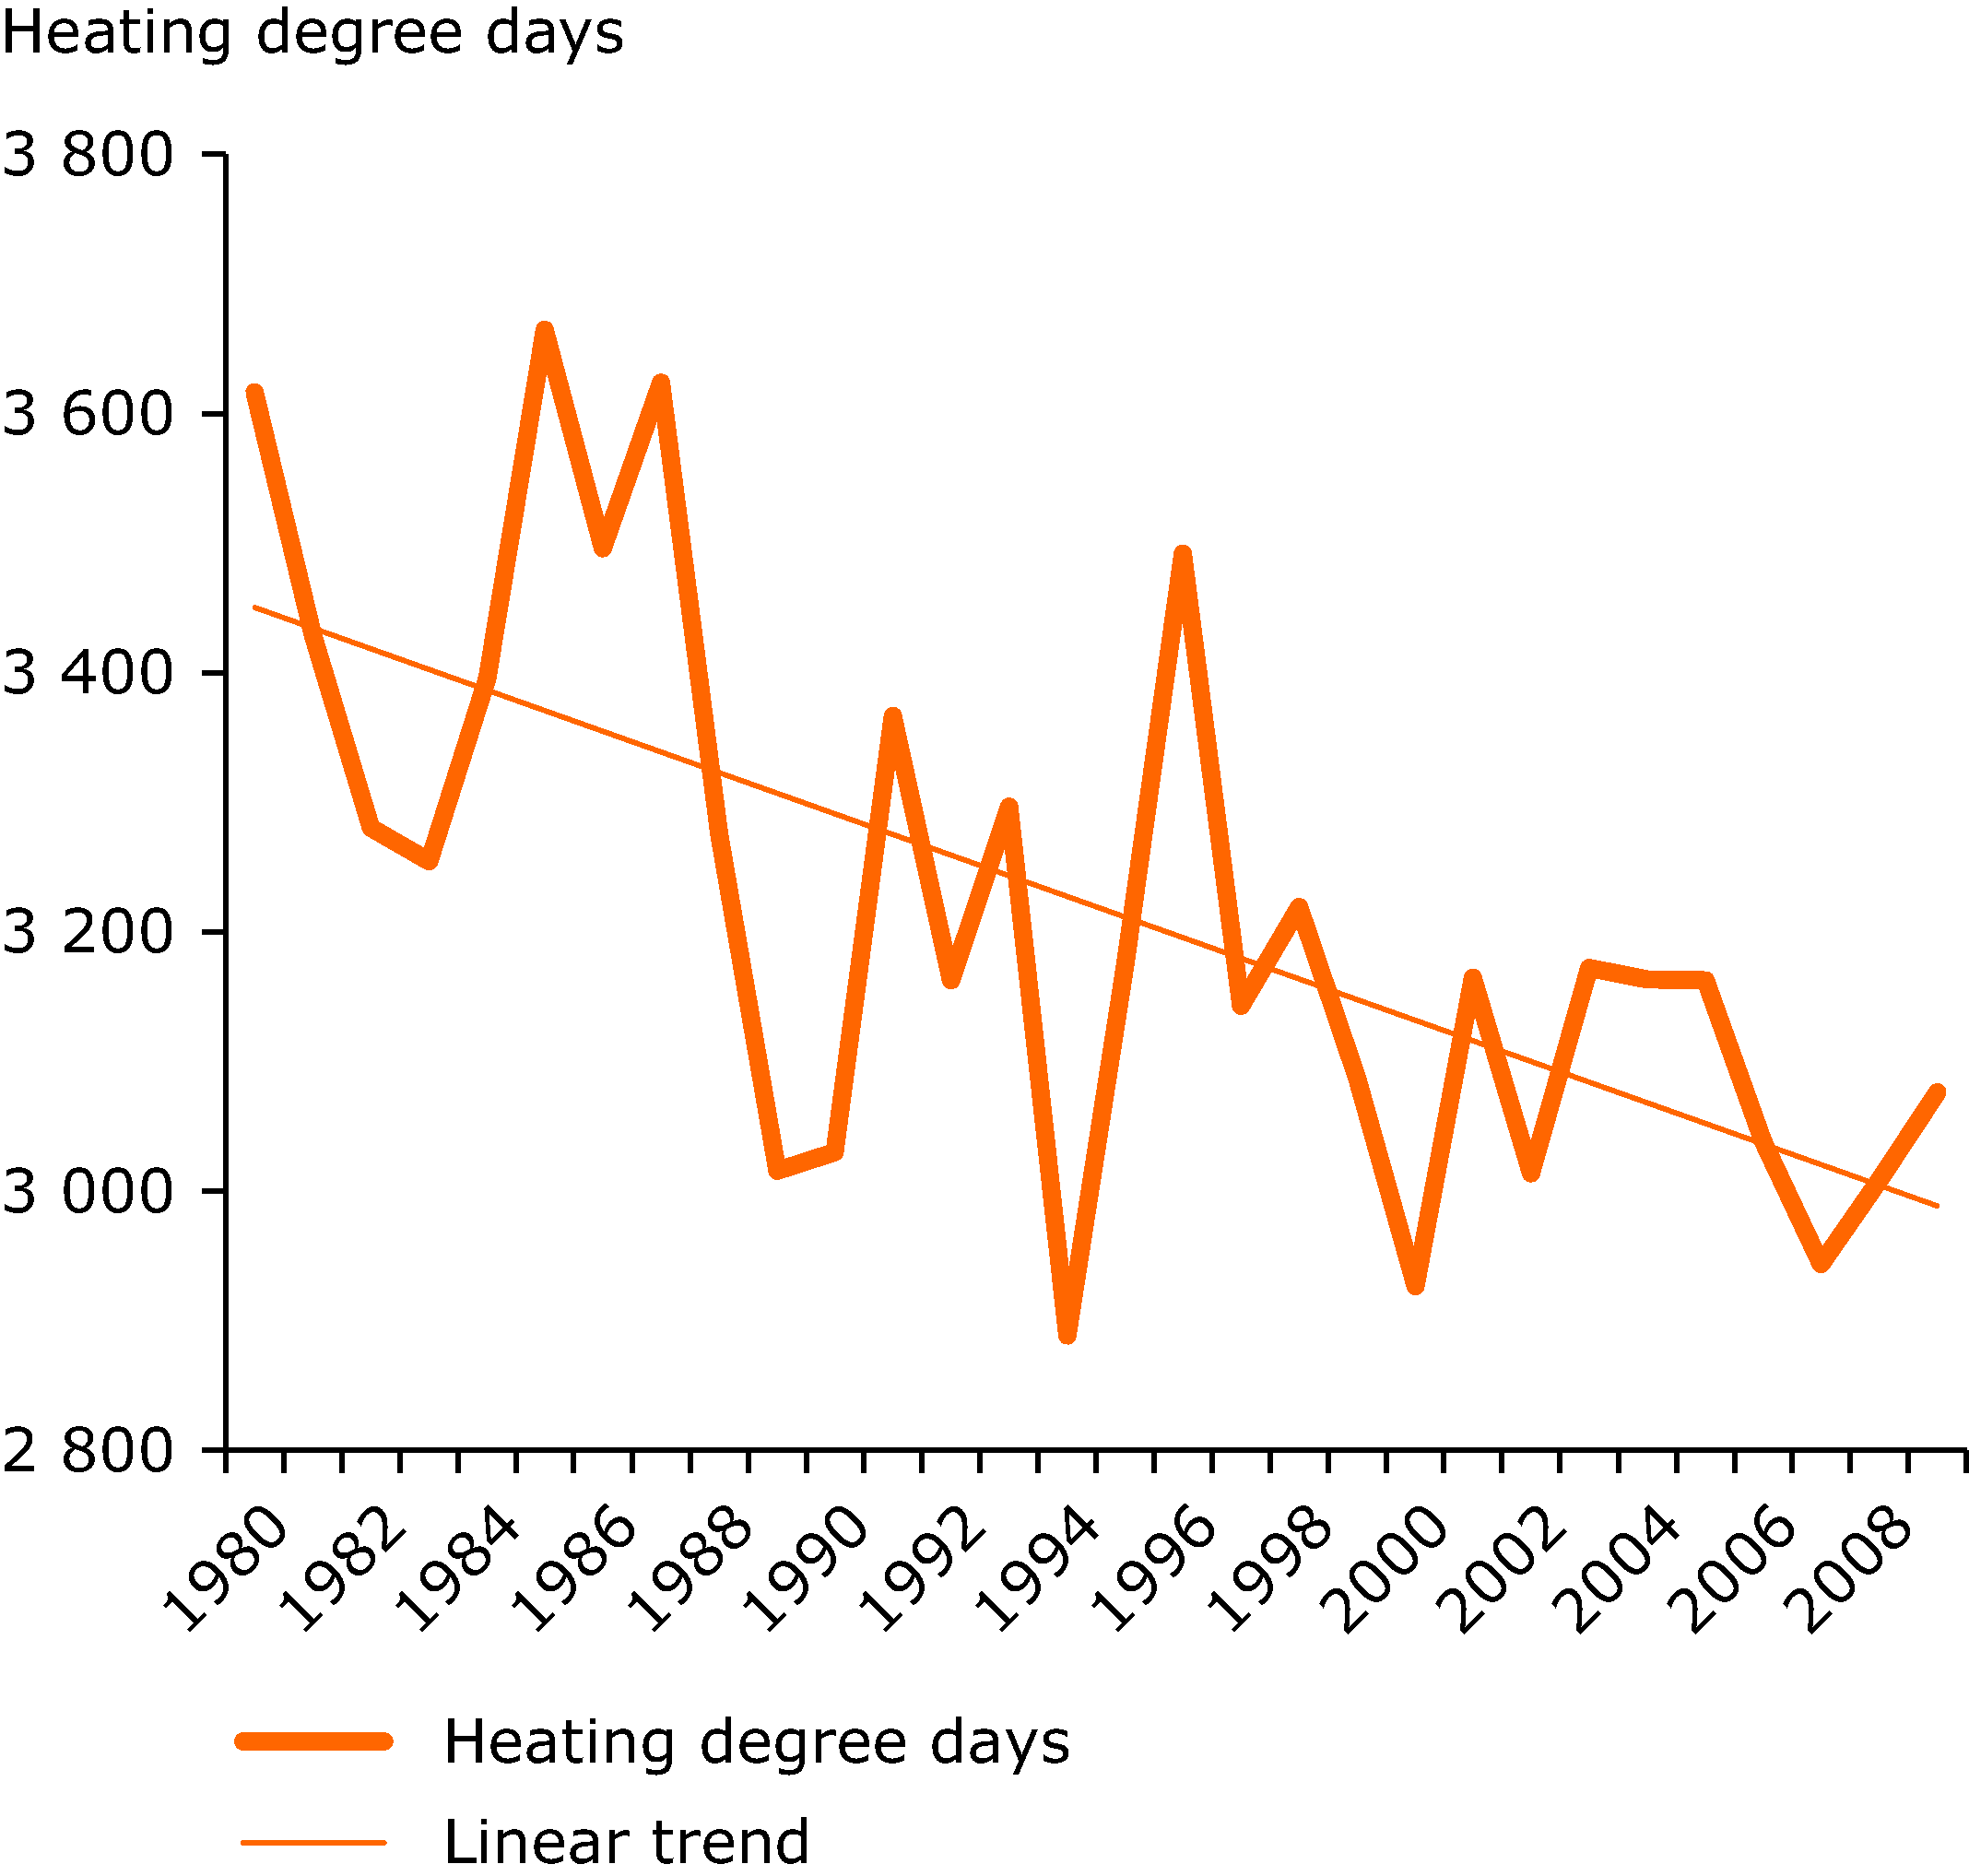 Trend in heating degree days in the EU-27